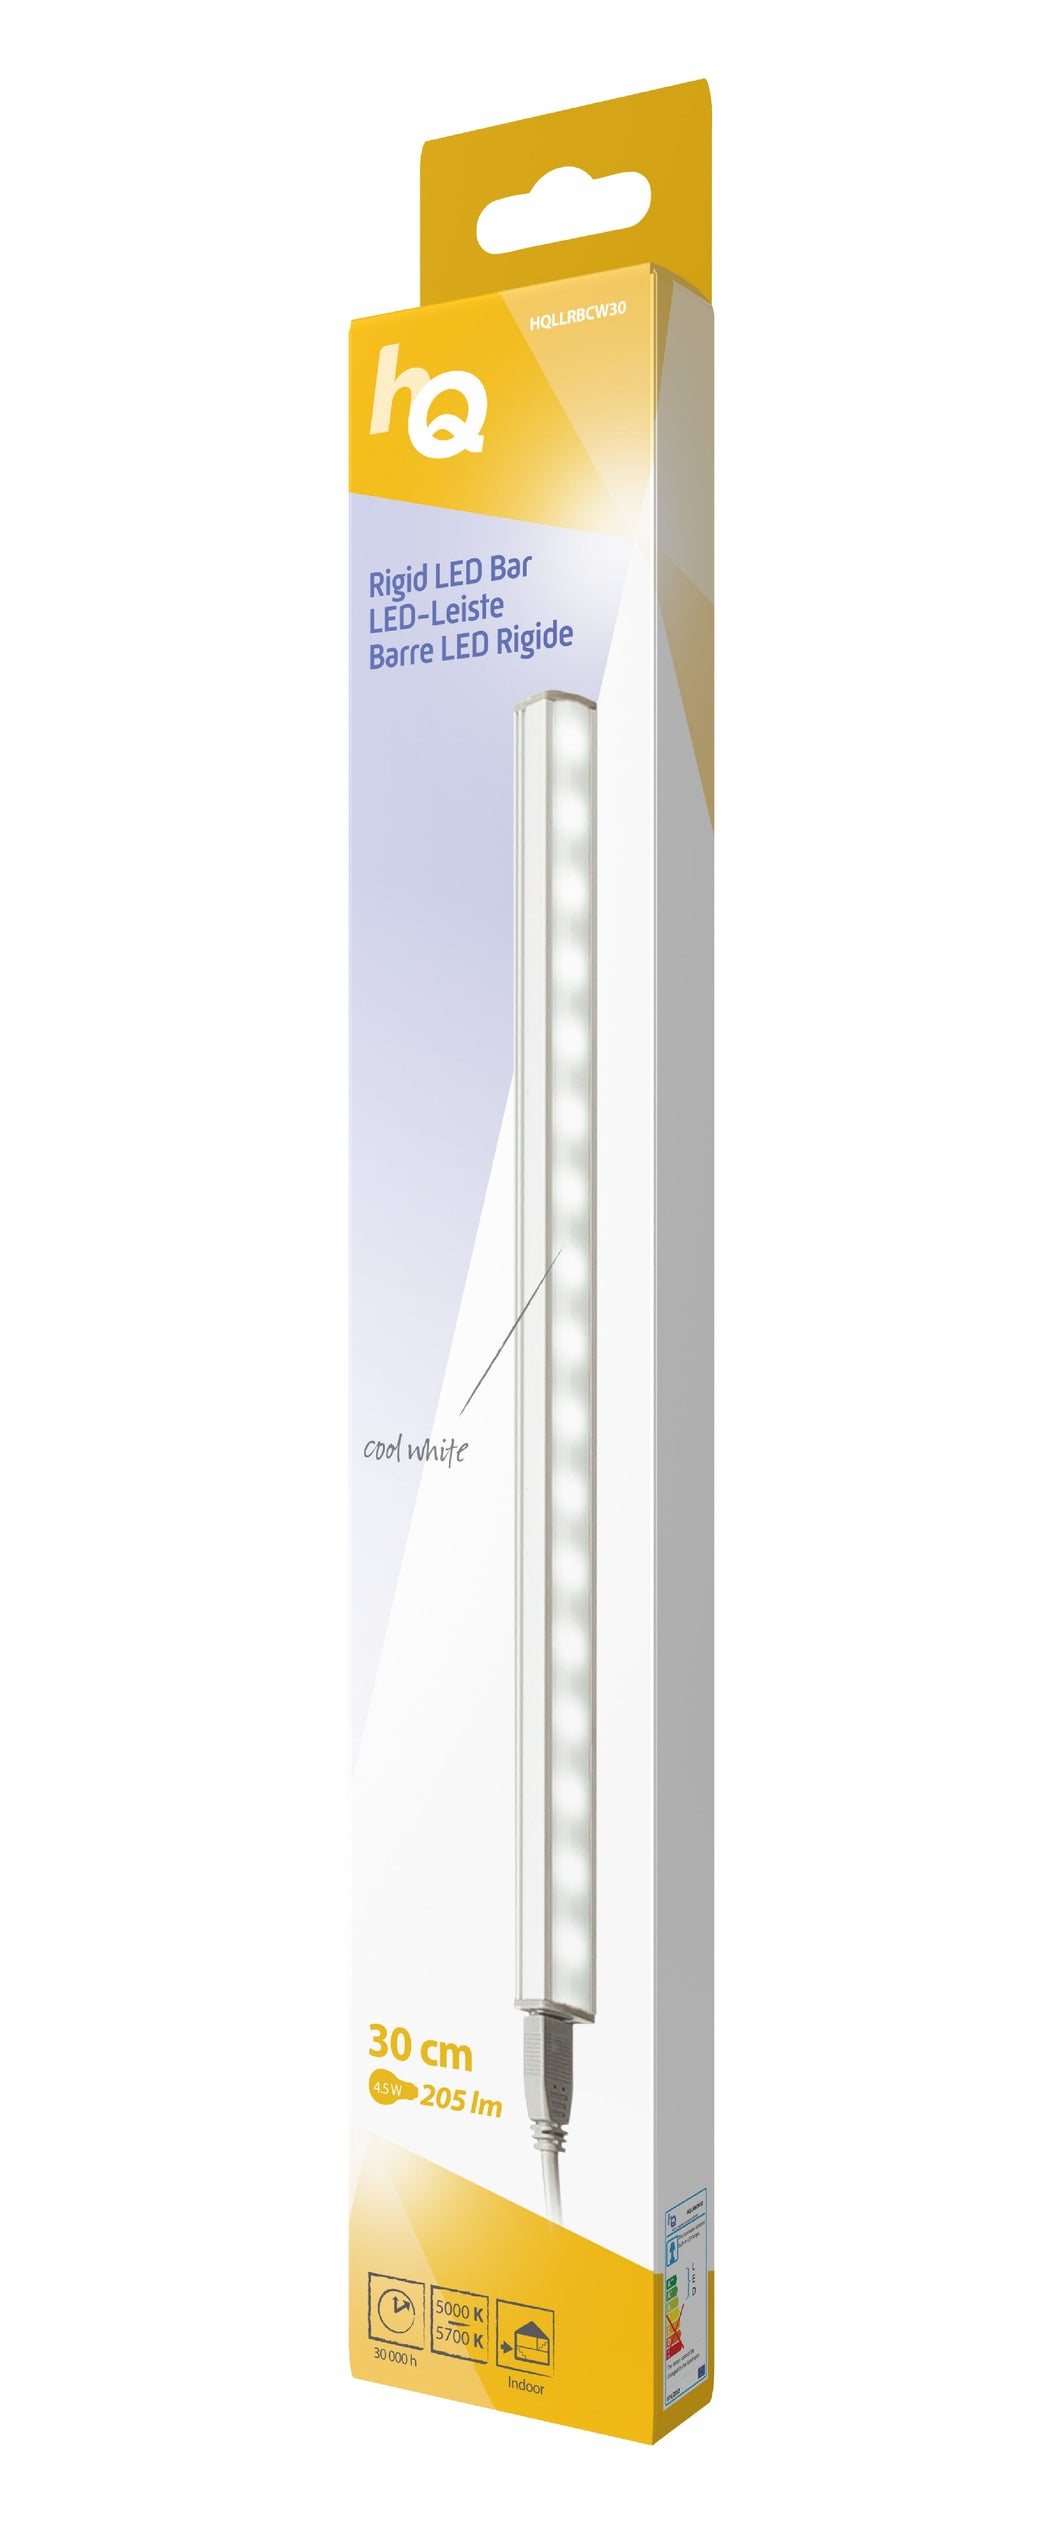 LED-Leiste starr 4.5 W 205 lm Kühles weiss - 30 cm